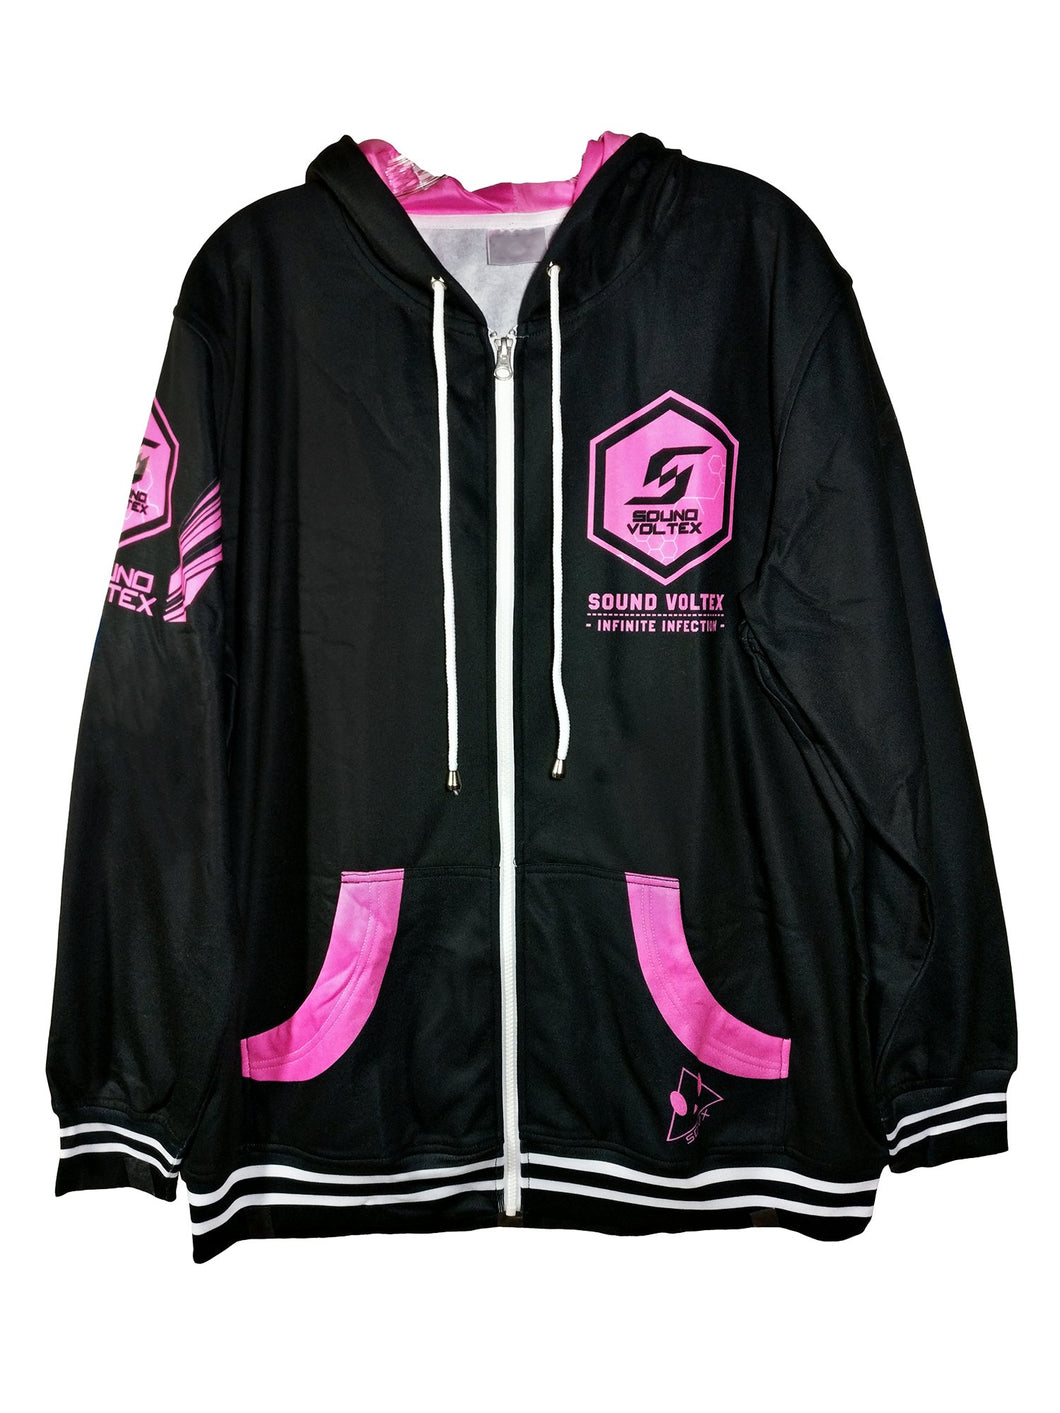 SDVX 2 INFINITE INFECTION DARK ZIPPER HOODIE